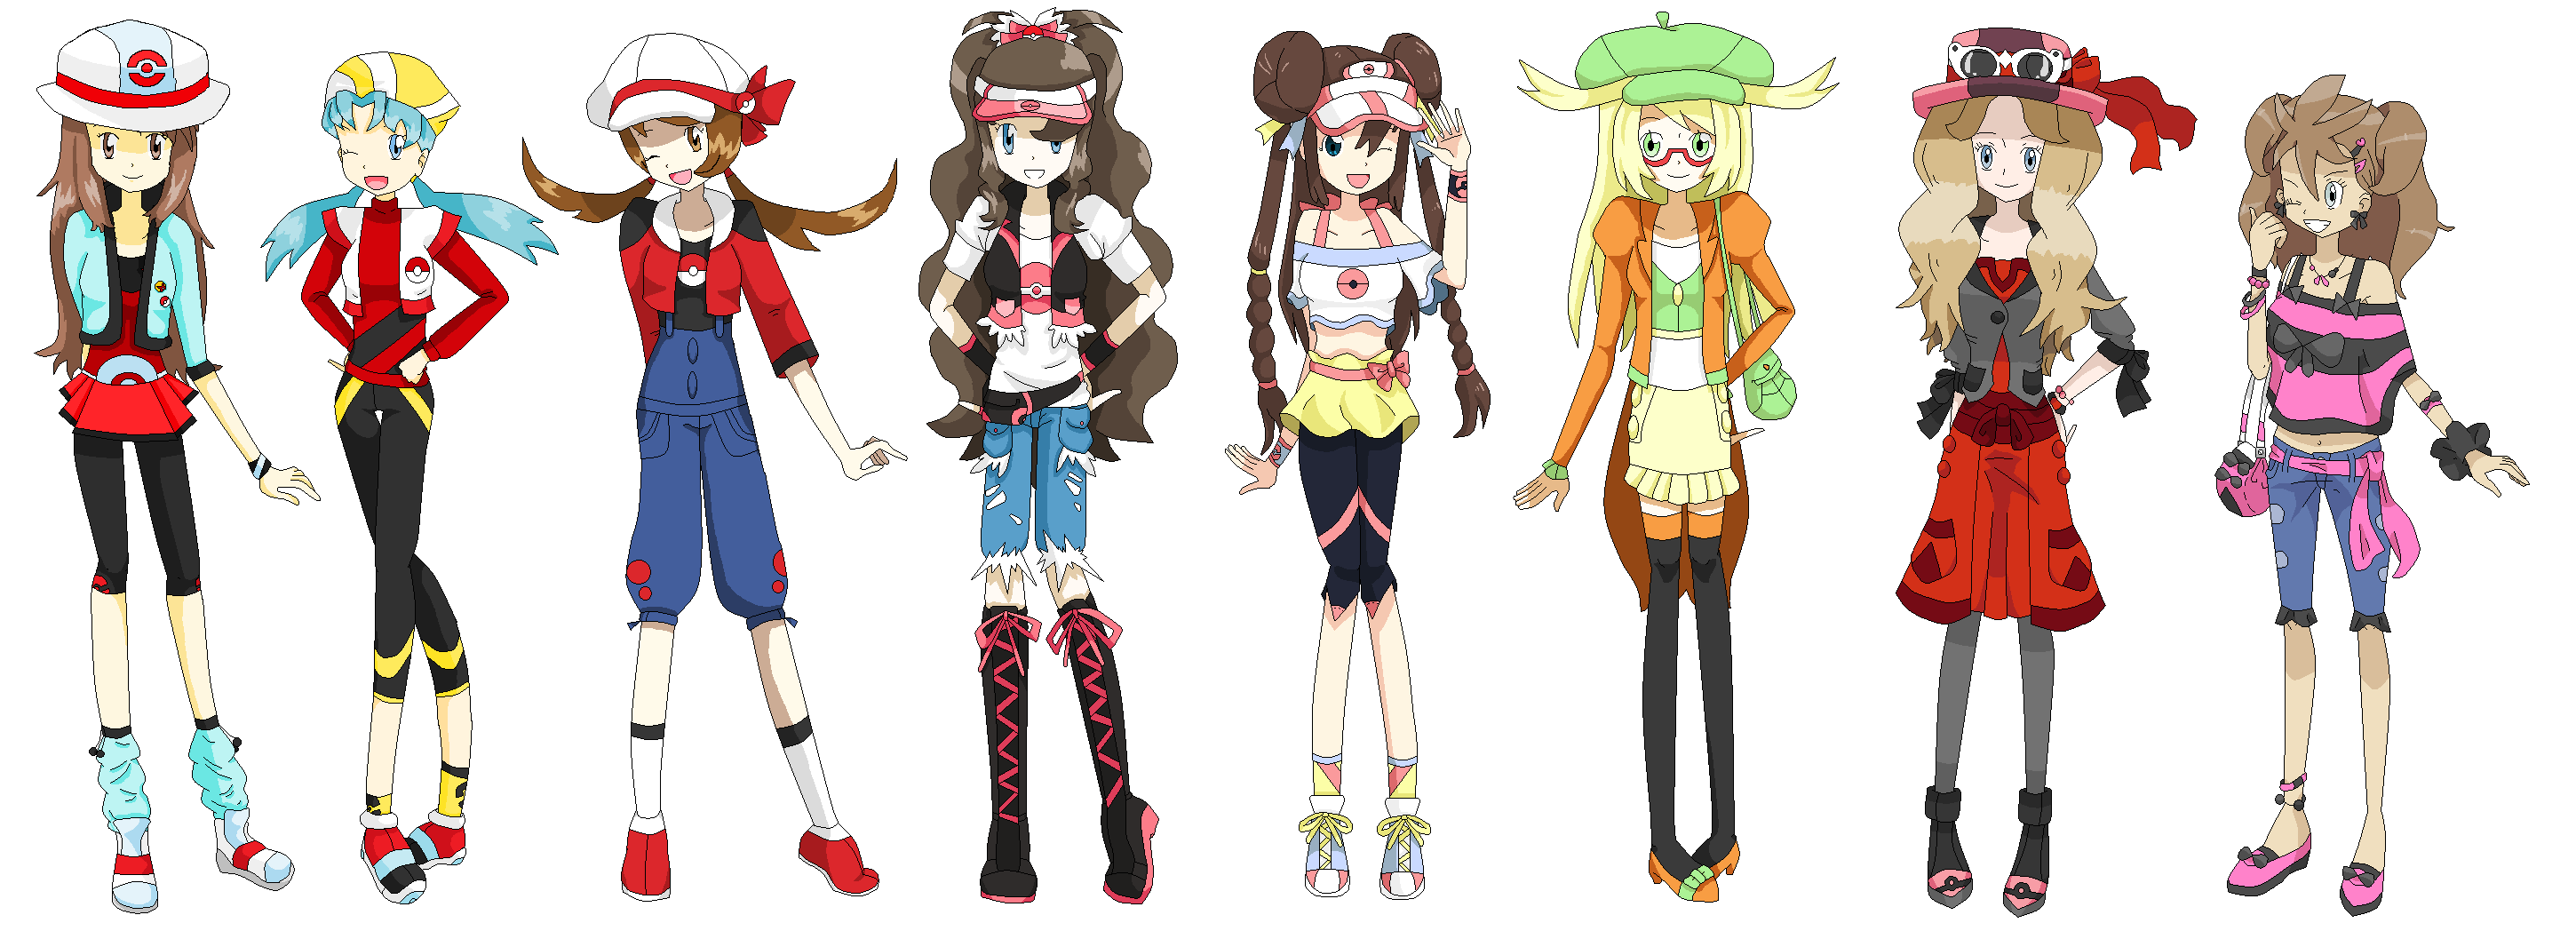 pokemon trainer outfit ideas - Google Search  Female protagonist